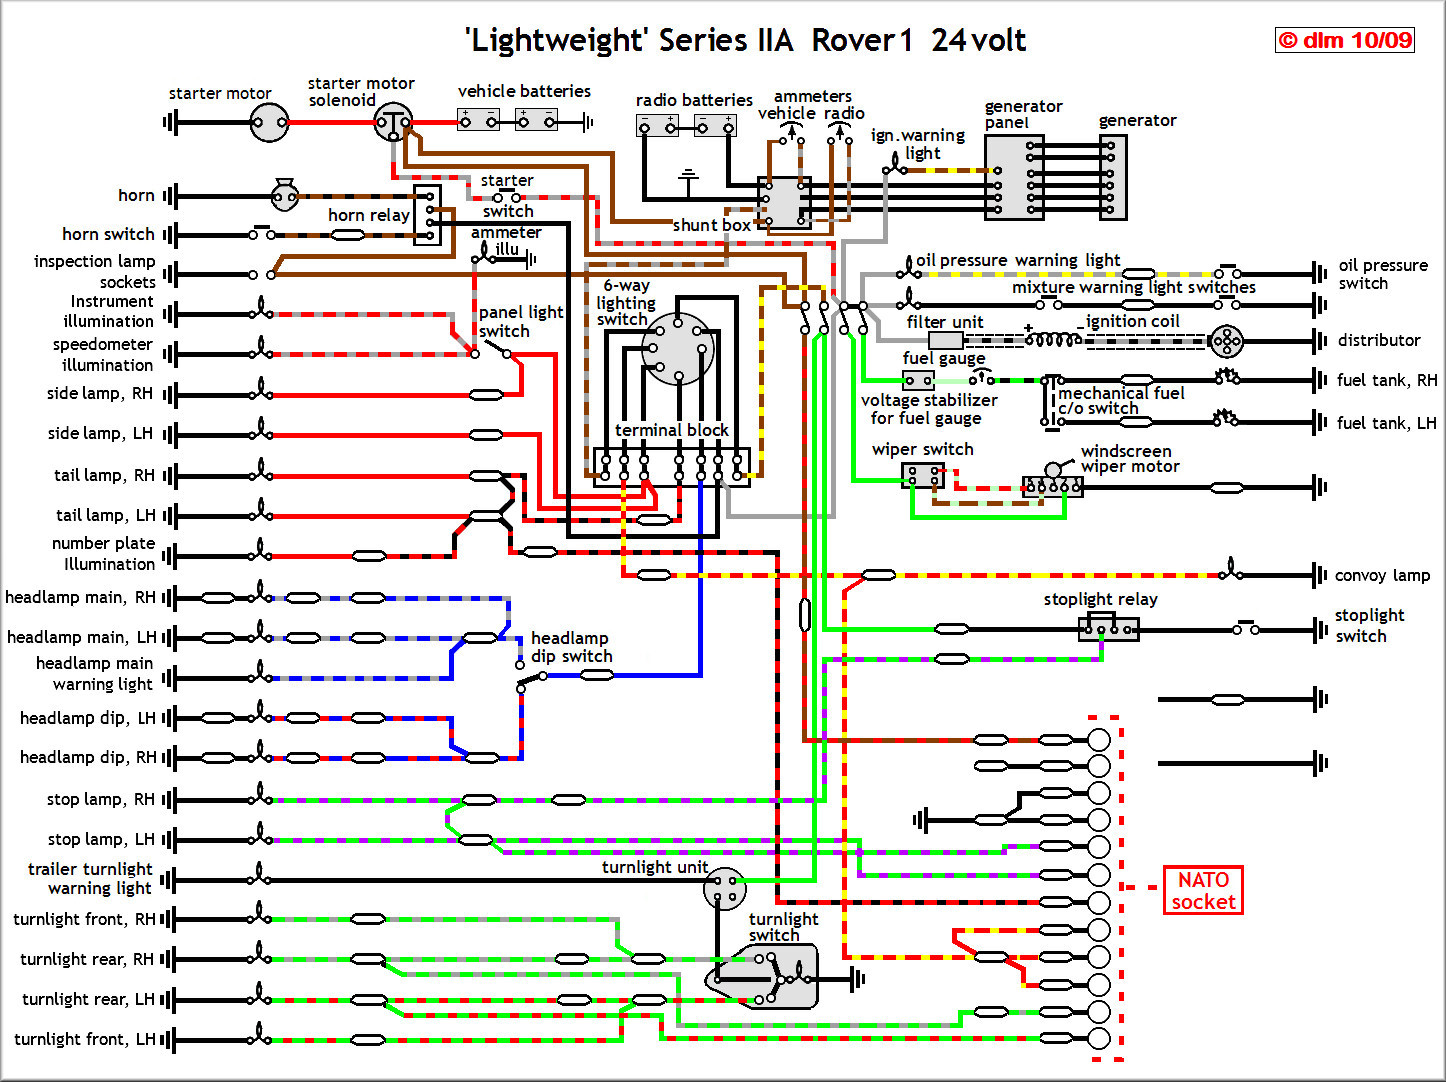 rover1 24Av land rover lr3 wiring diagram land rover belt routing \u2022 wiring land rover wiring harness at virtualis.co